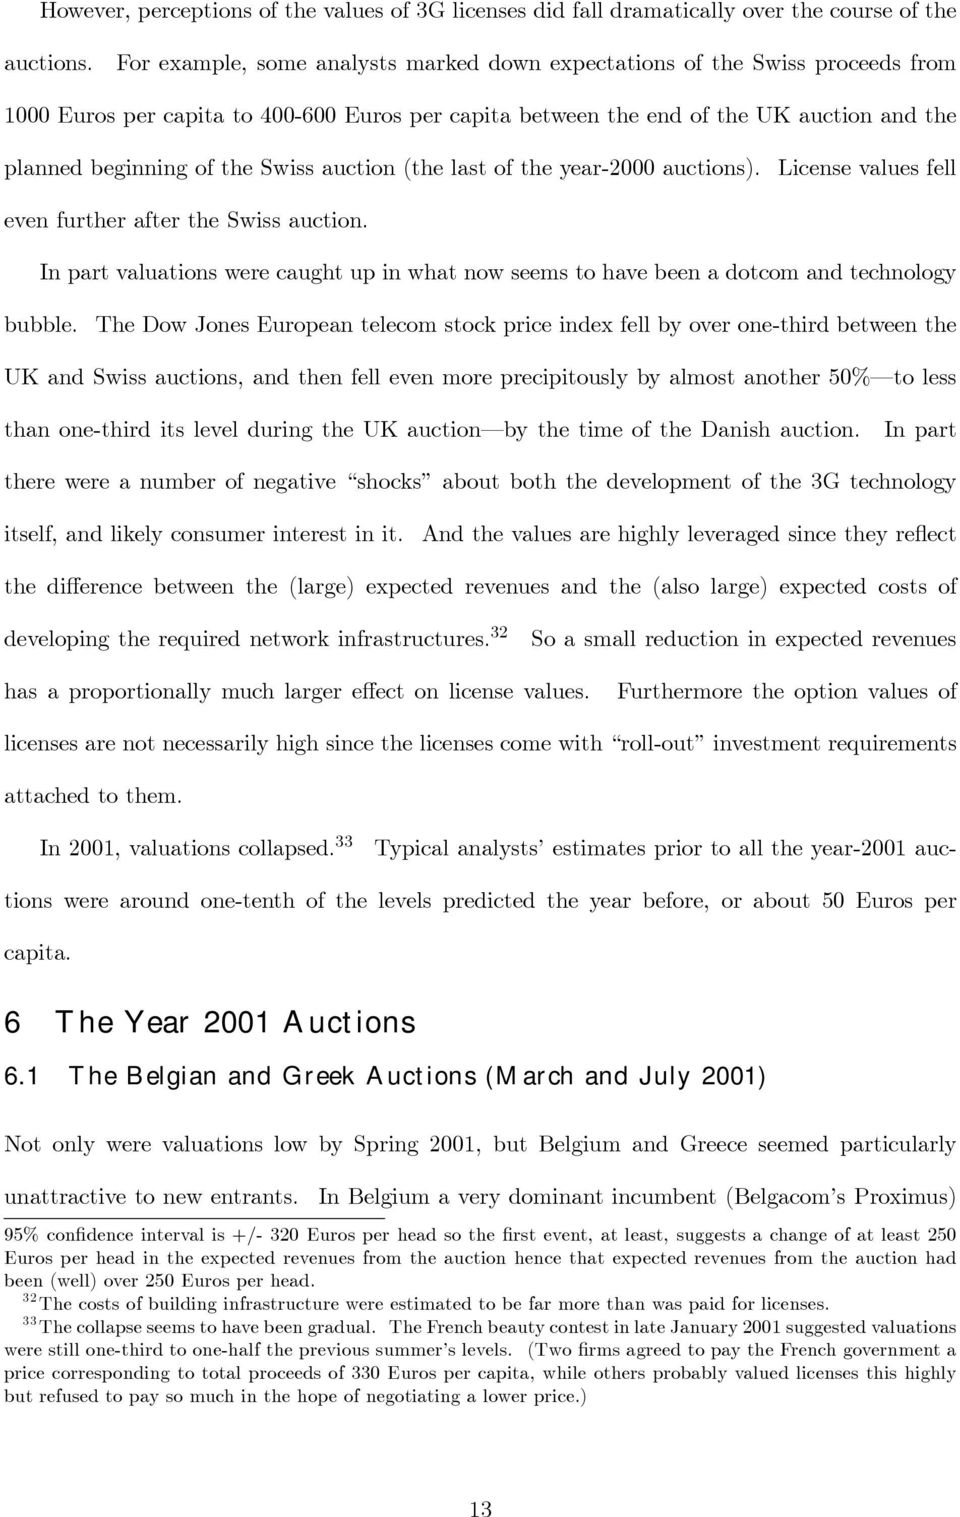 Swiss auction (the last of the year-2000 auctions). License values fell even further after the Swiss auction.